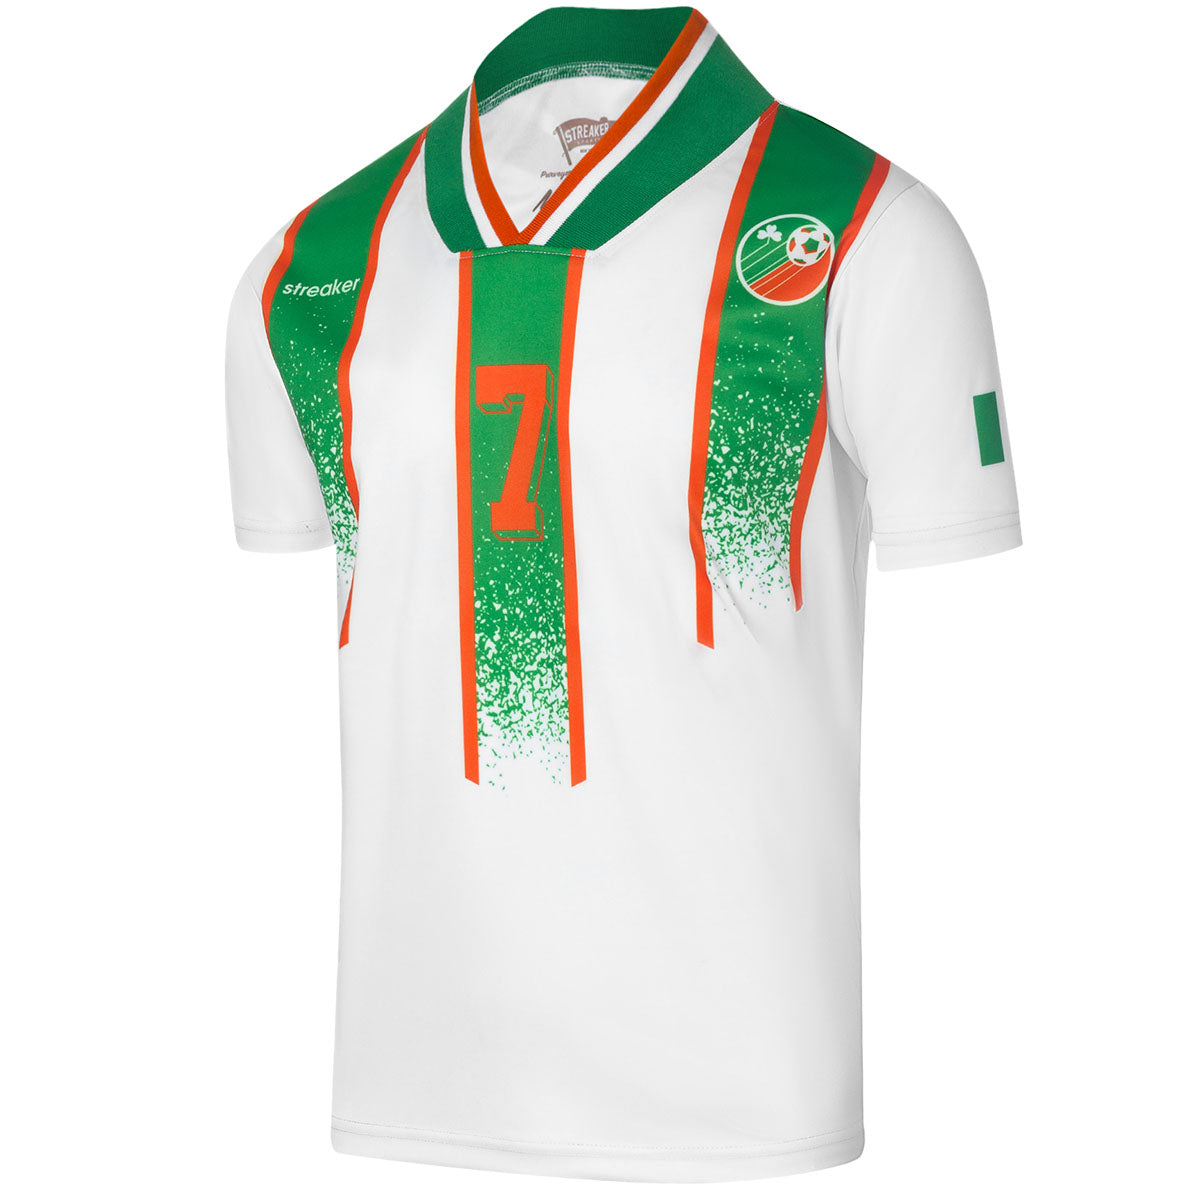 dd27d503a 1994 Ireland World Cup Soccer Jersey – Streaker Sports